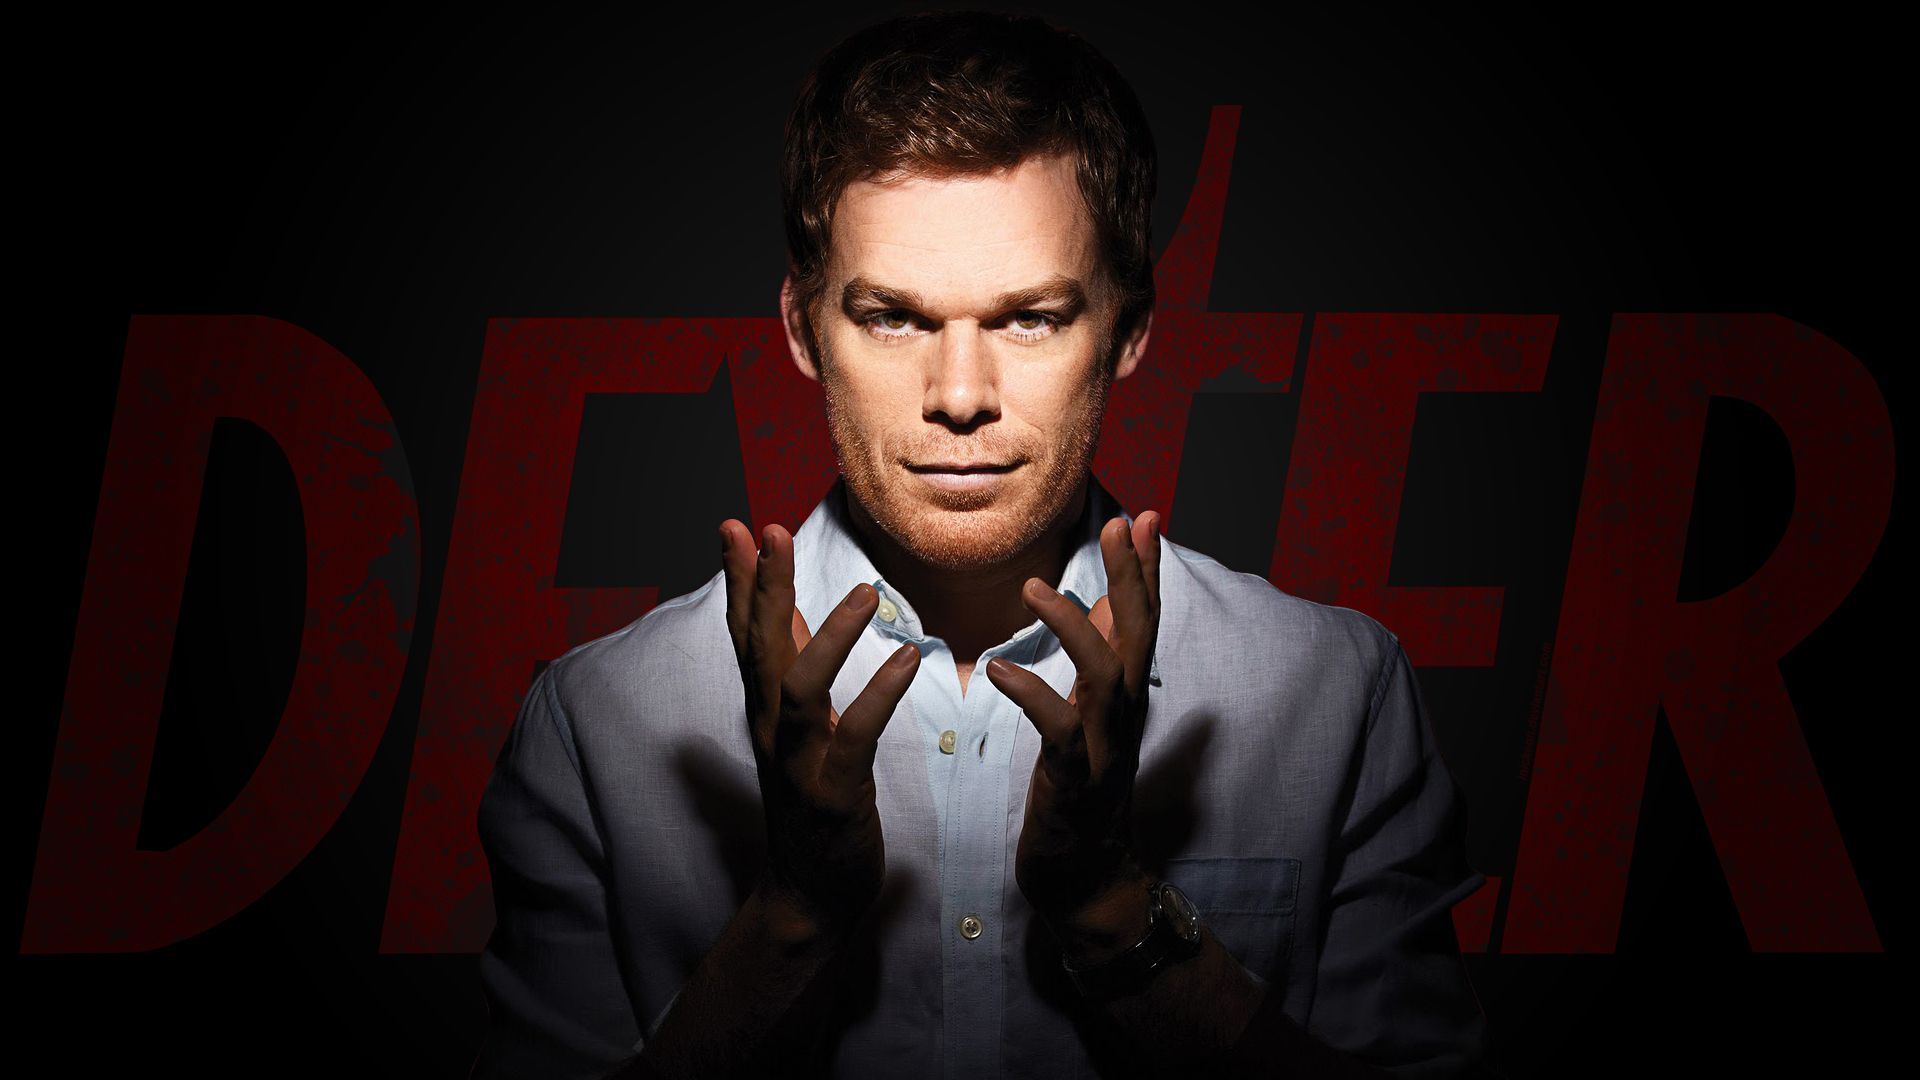 Dexter Wallpaper 1080p In 2020 Dexter Morgan Dexter Wallpaper Michael C Hall